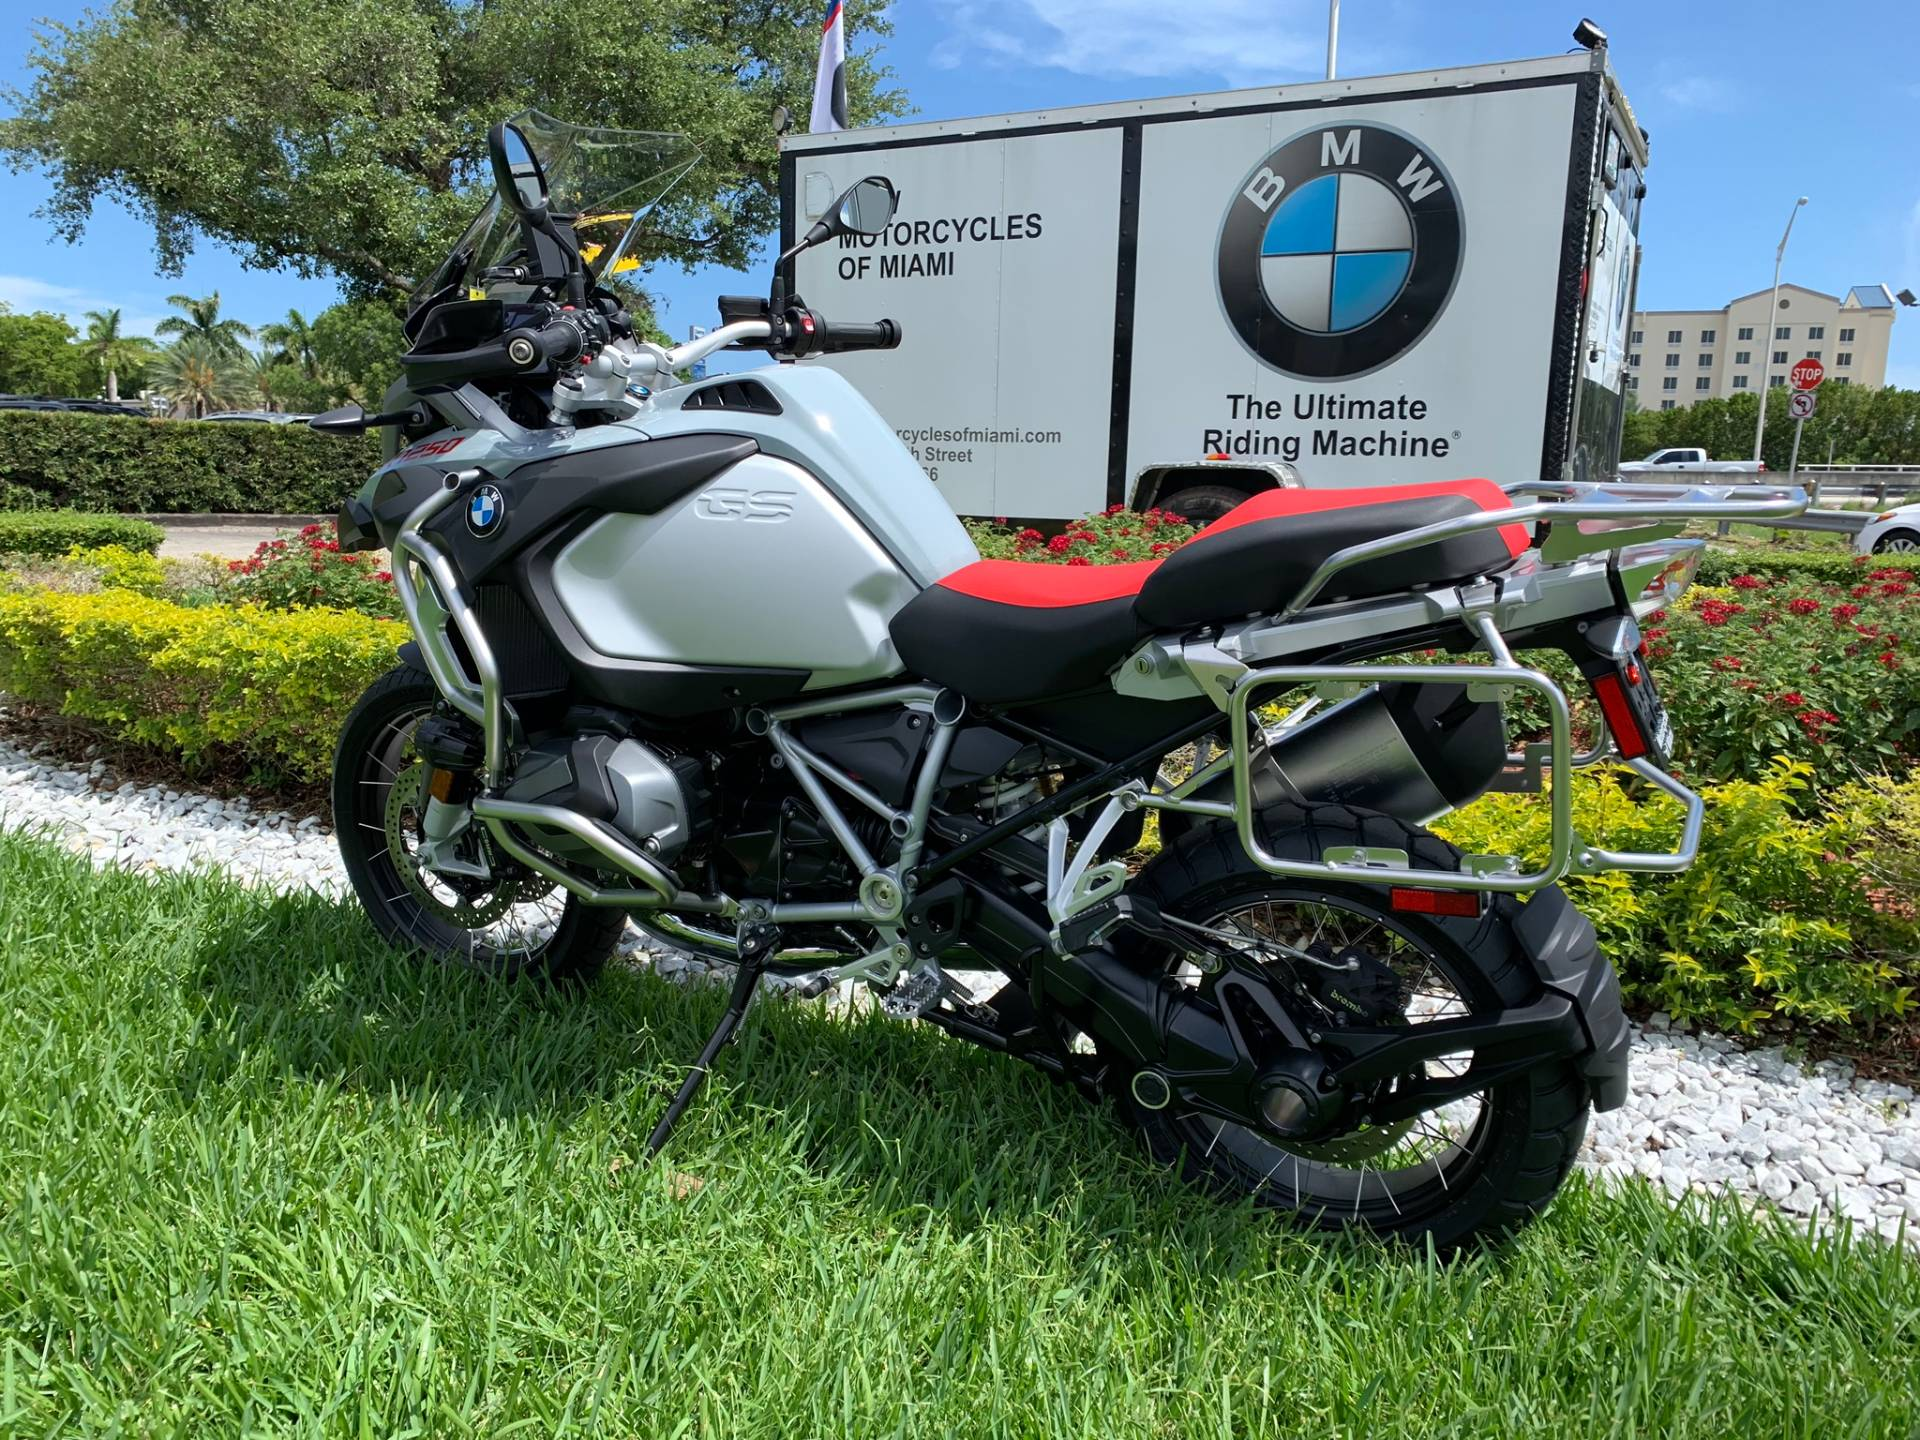 New 2019 BMW R 1250 GSA for sale, New BMW for sale R 1250GSA, New BMW Motorcycle R1250GSA for sale, new BMW 1250GS Adventure, R1250GS Adventure, Adventure. BMW Motorcycles of Miami, Motorcycles of Miami, Motorcycles Miami, New Motorcycles, Used Motorcycles, pre-owned. #BMWMotorcyclesOfMiami #Motorcy - Photo 10